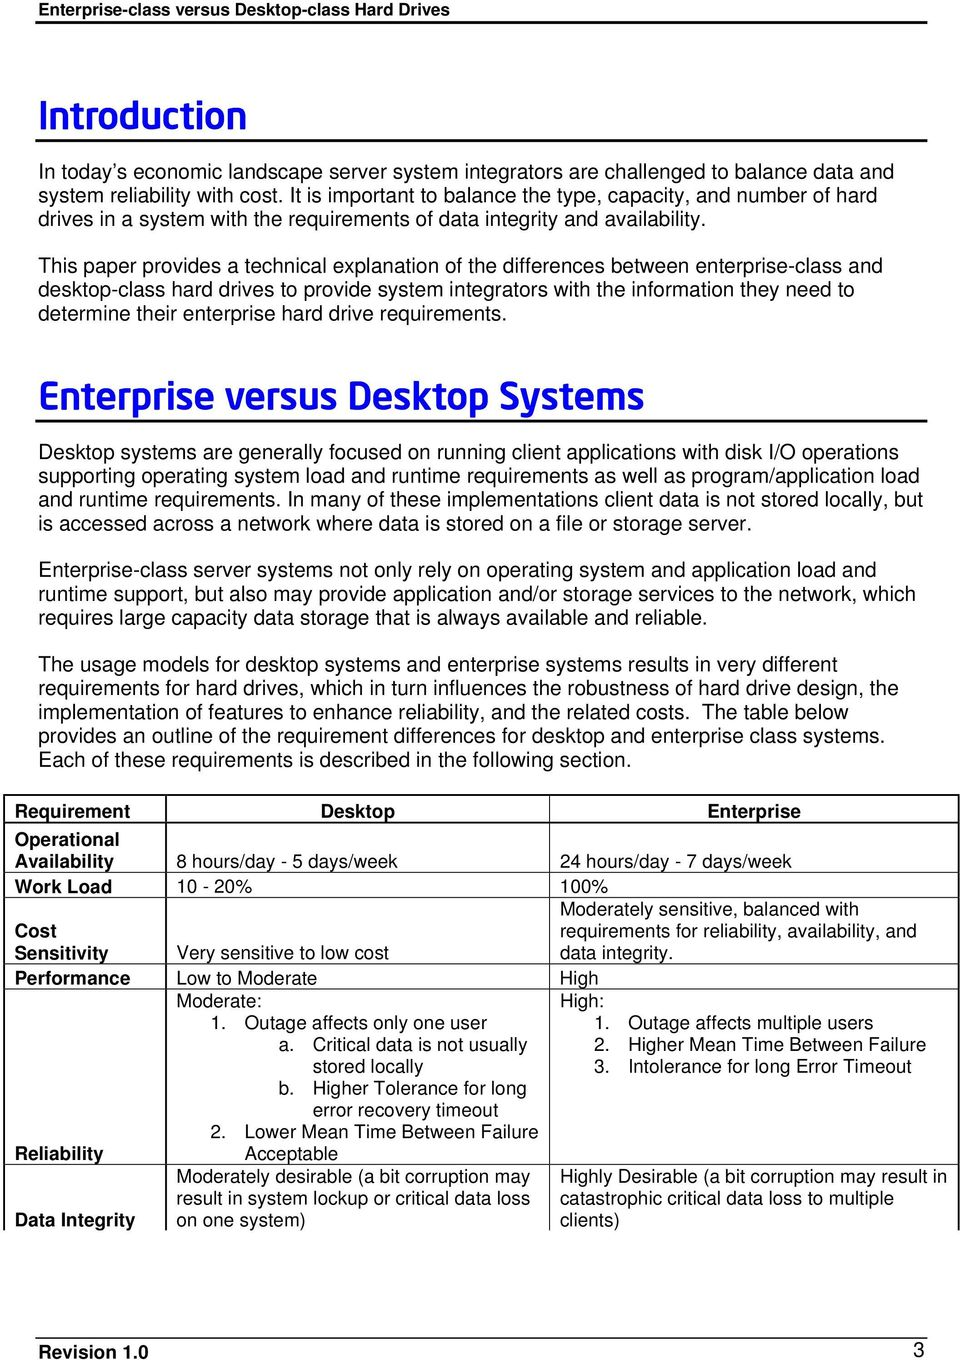 This paper provides a technical explanation of the differences between enterprise-class and desktop-class hard drives to provide system integrators with the information they need to determine their